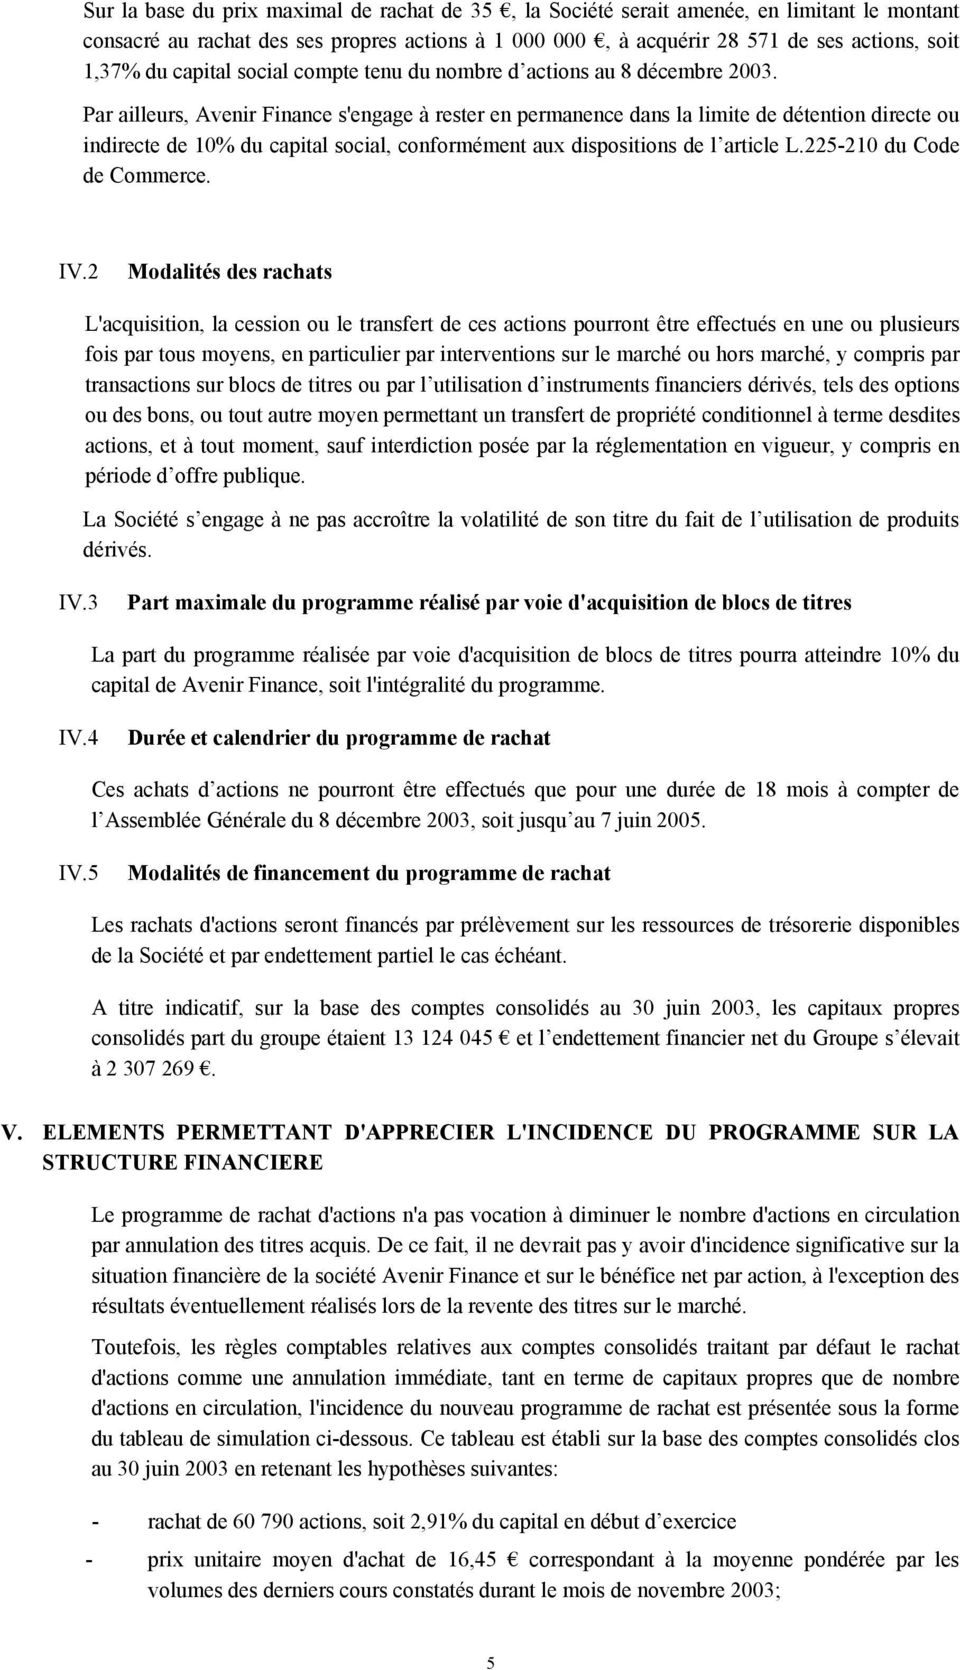 Par ailleurs, Avenir Finance s'engage à rester en permanence dans la limite de détention directe ou indirecte de 10% du capital social, conformément aux dispositions de l article L.